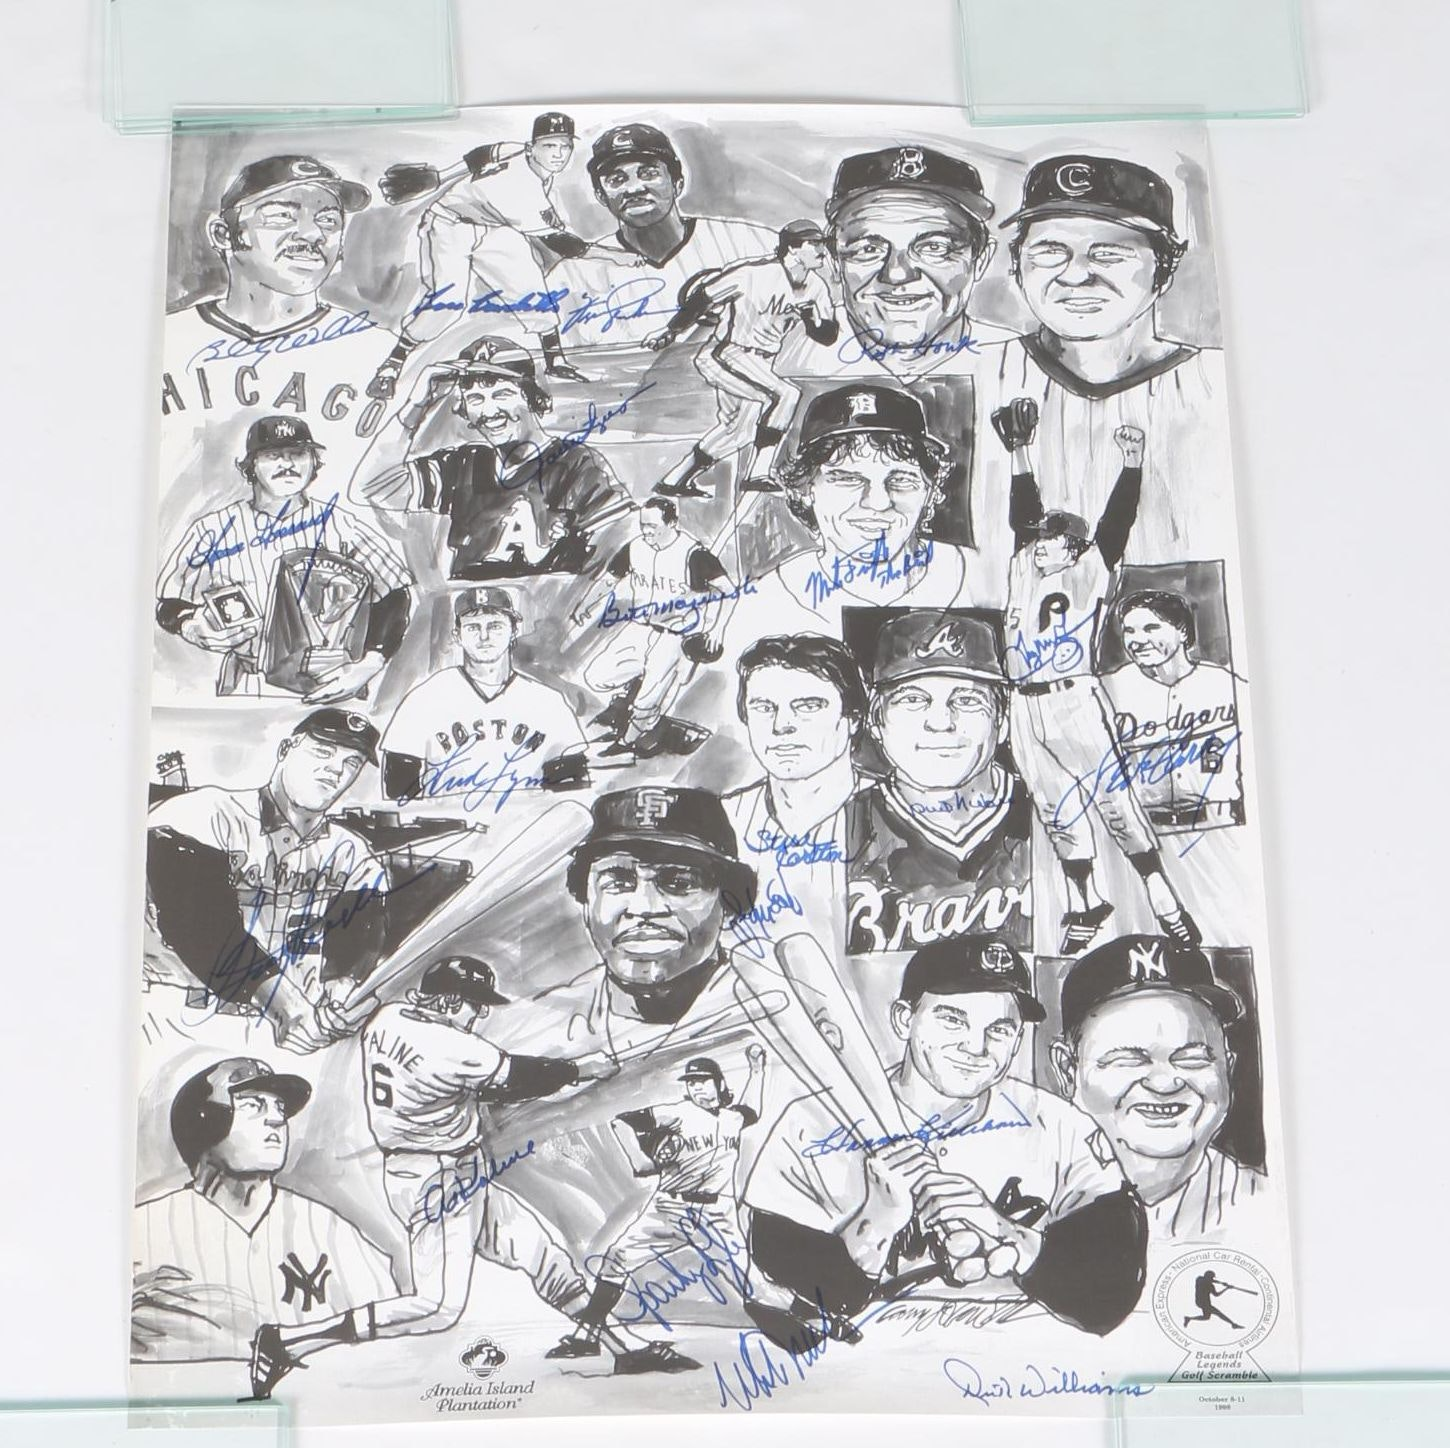 Signed Halftone Print Collage of Baseball Players